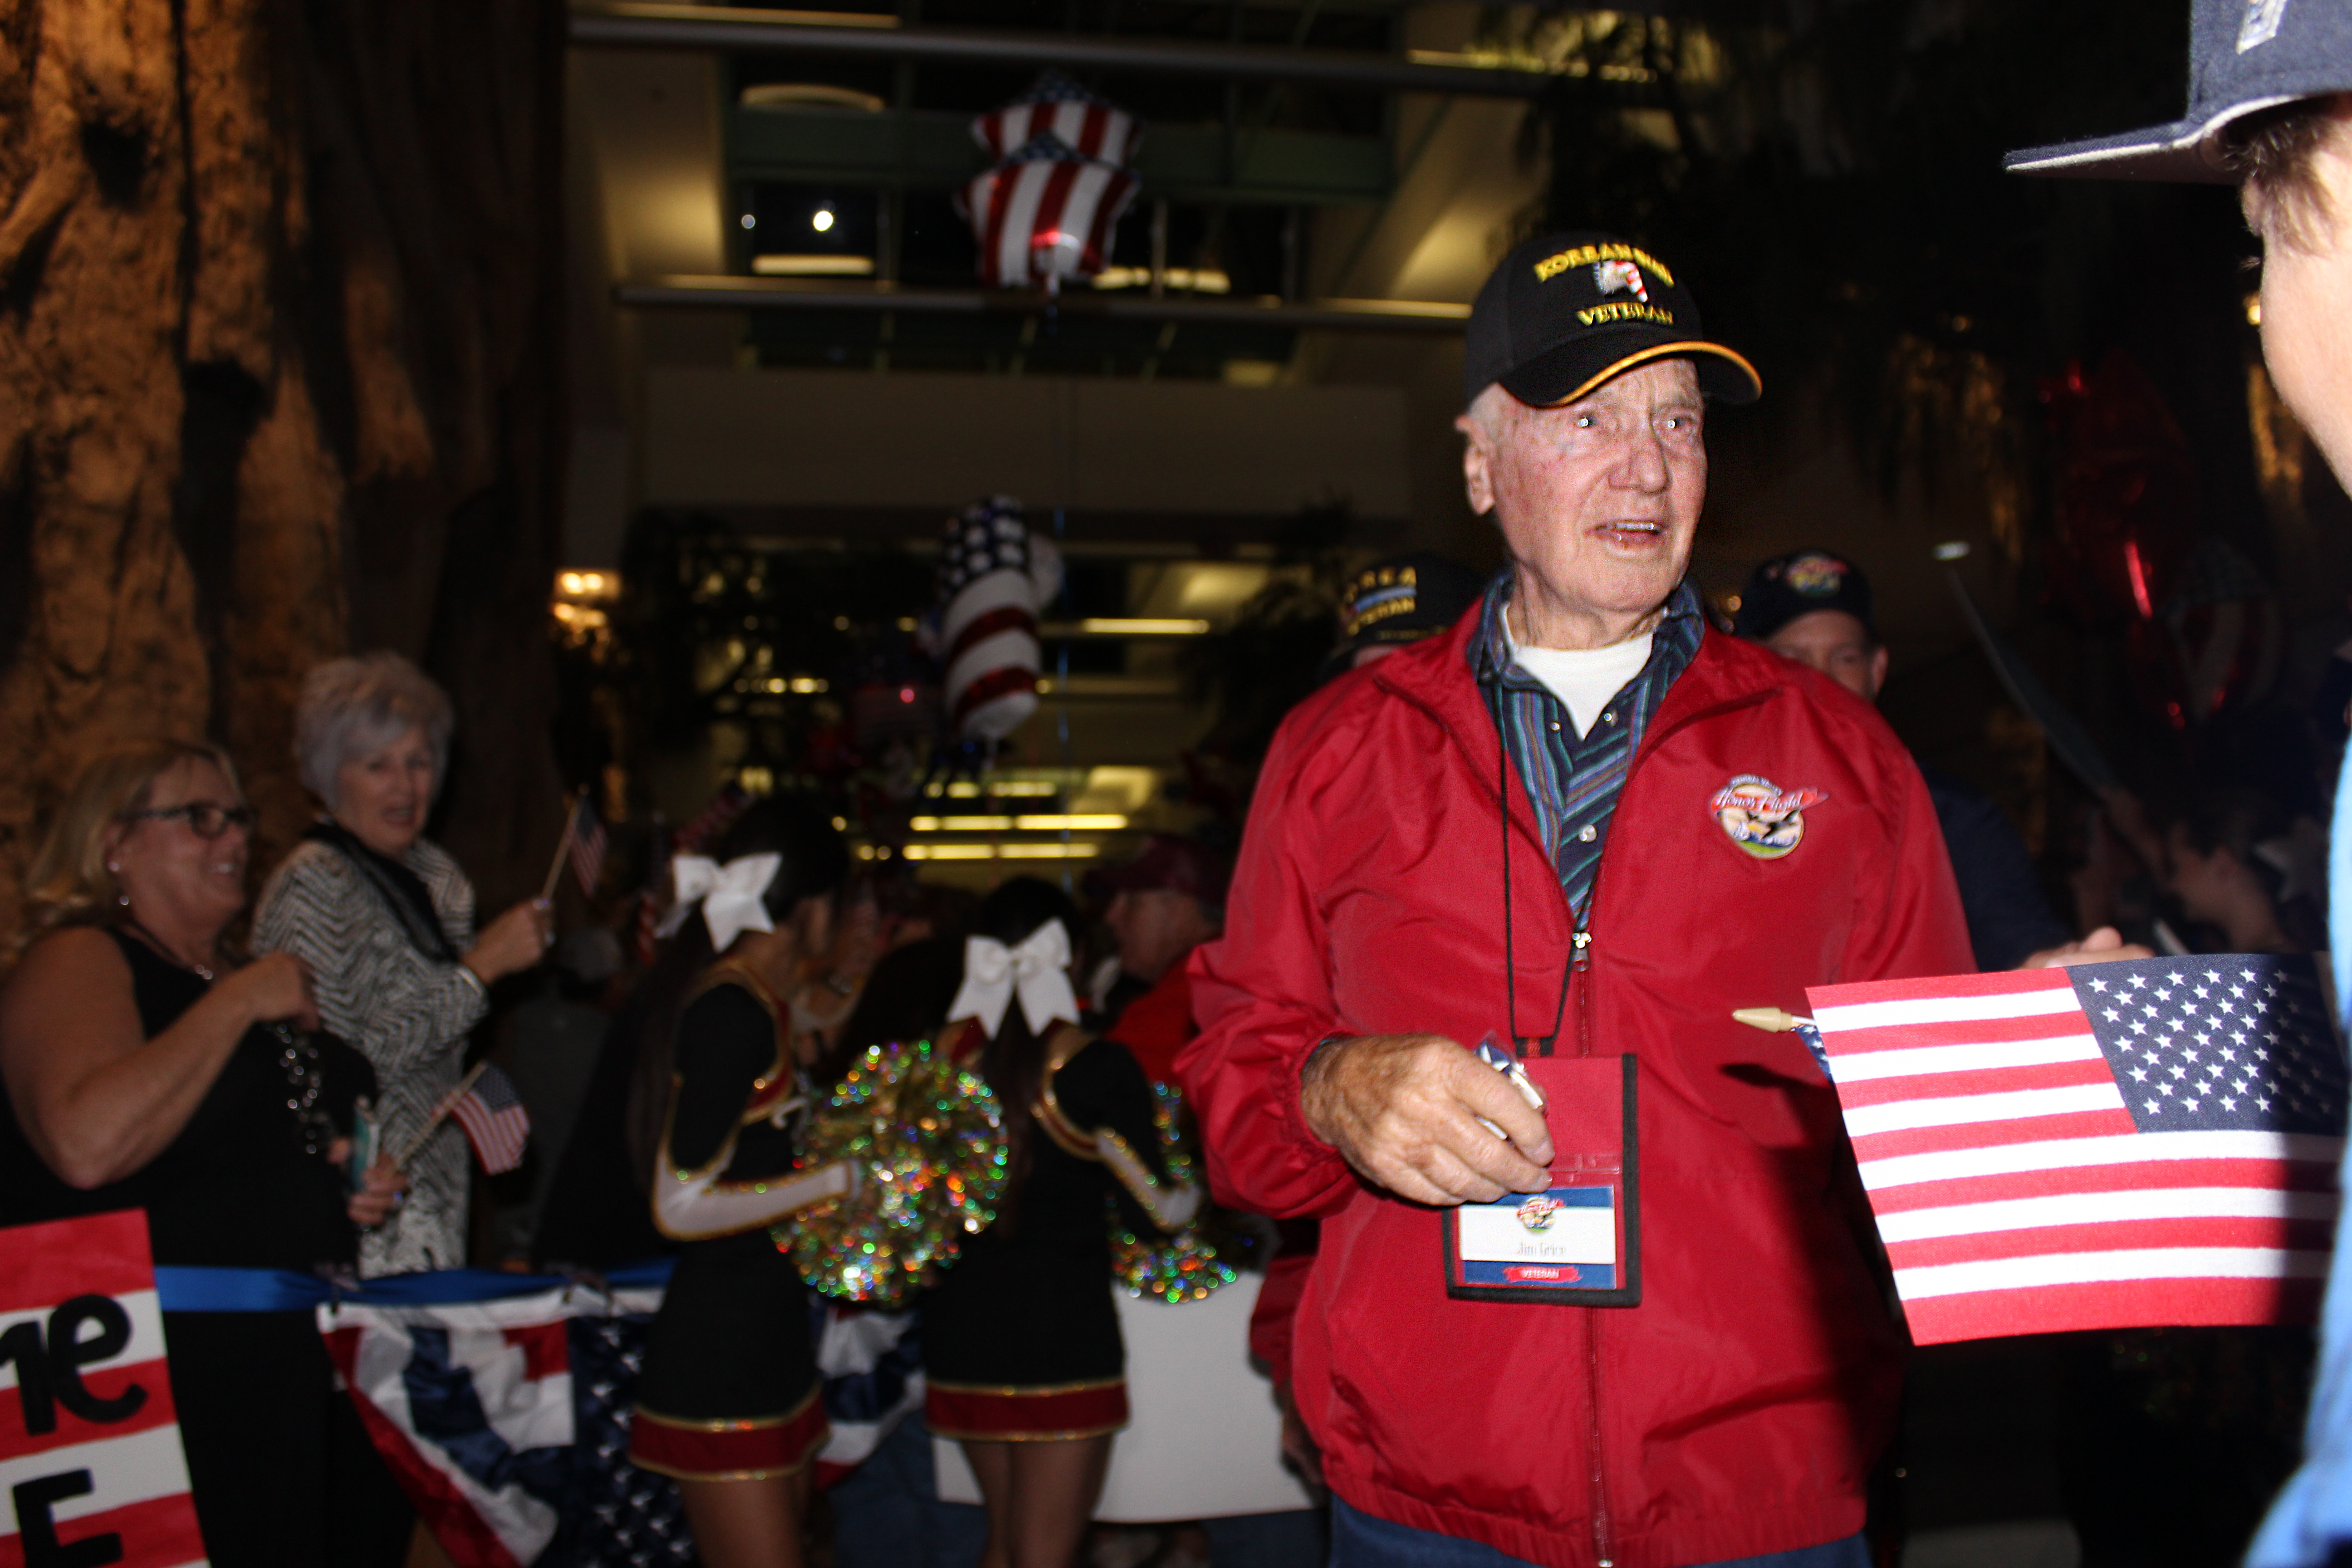 Jim exiting the Honor Flight at the Fresno Airport homecoming.